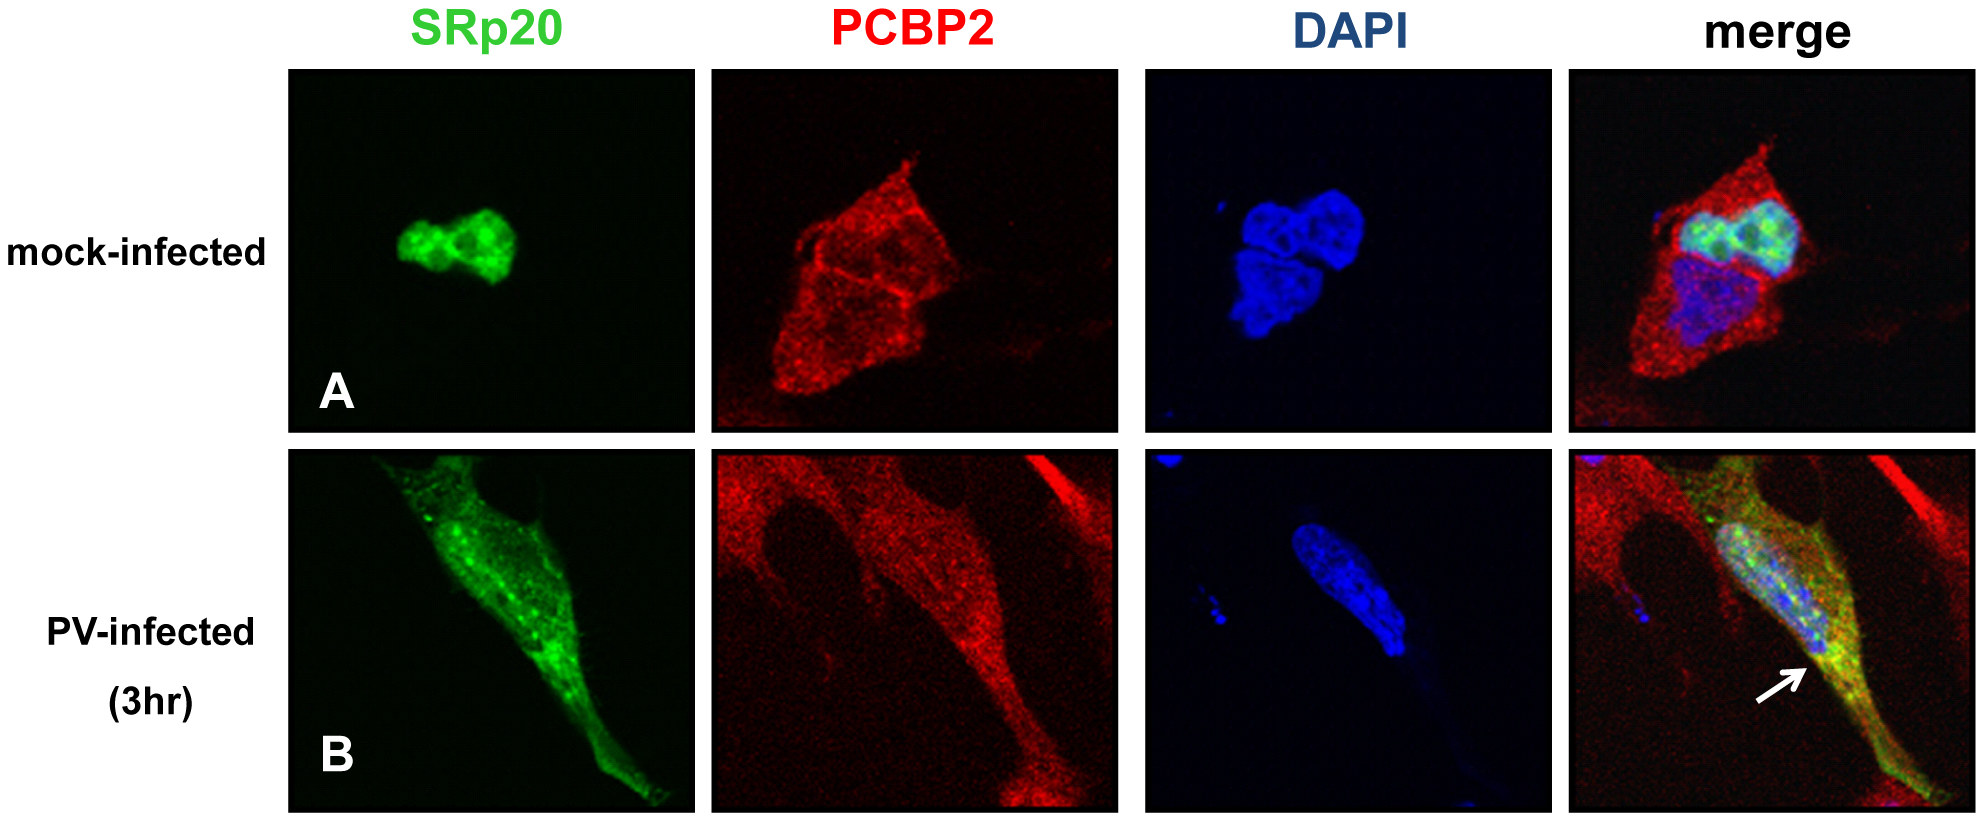 SRp20 partial co-localization with PCBP2 in the cytoplasm of poliovirus-infected SK-N-SH cells.